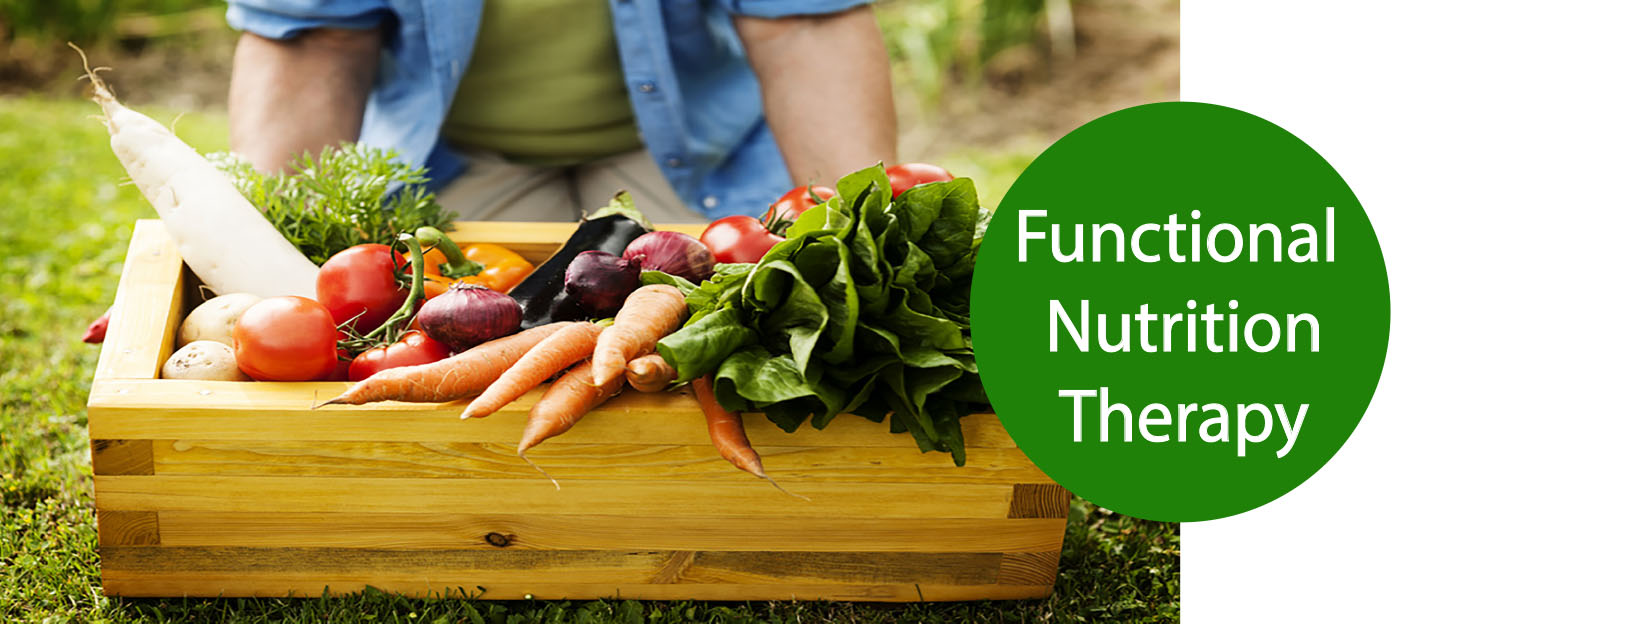 Functional Nutrition Therapy